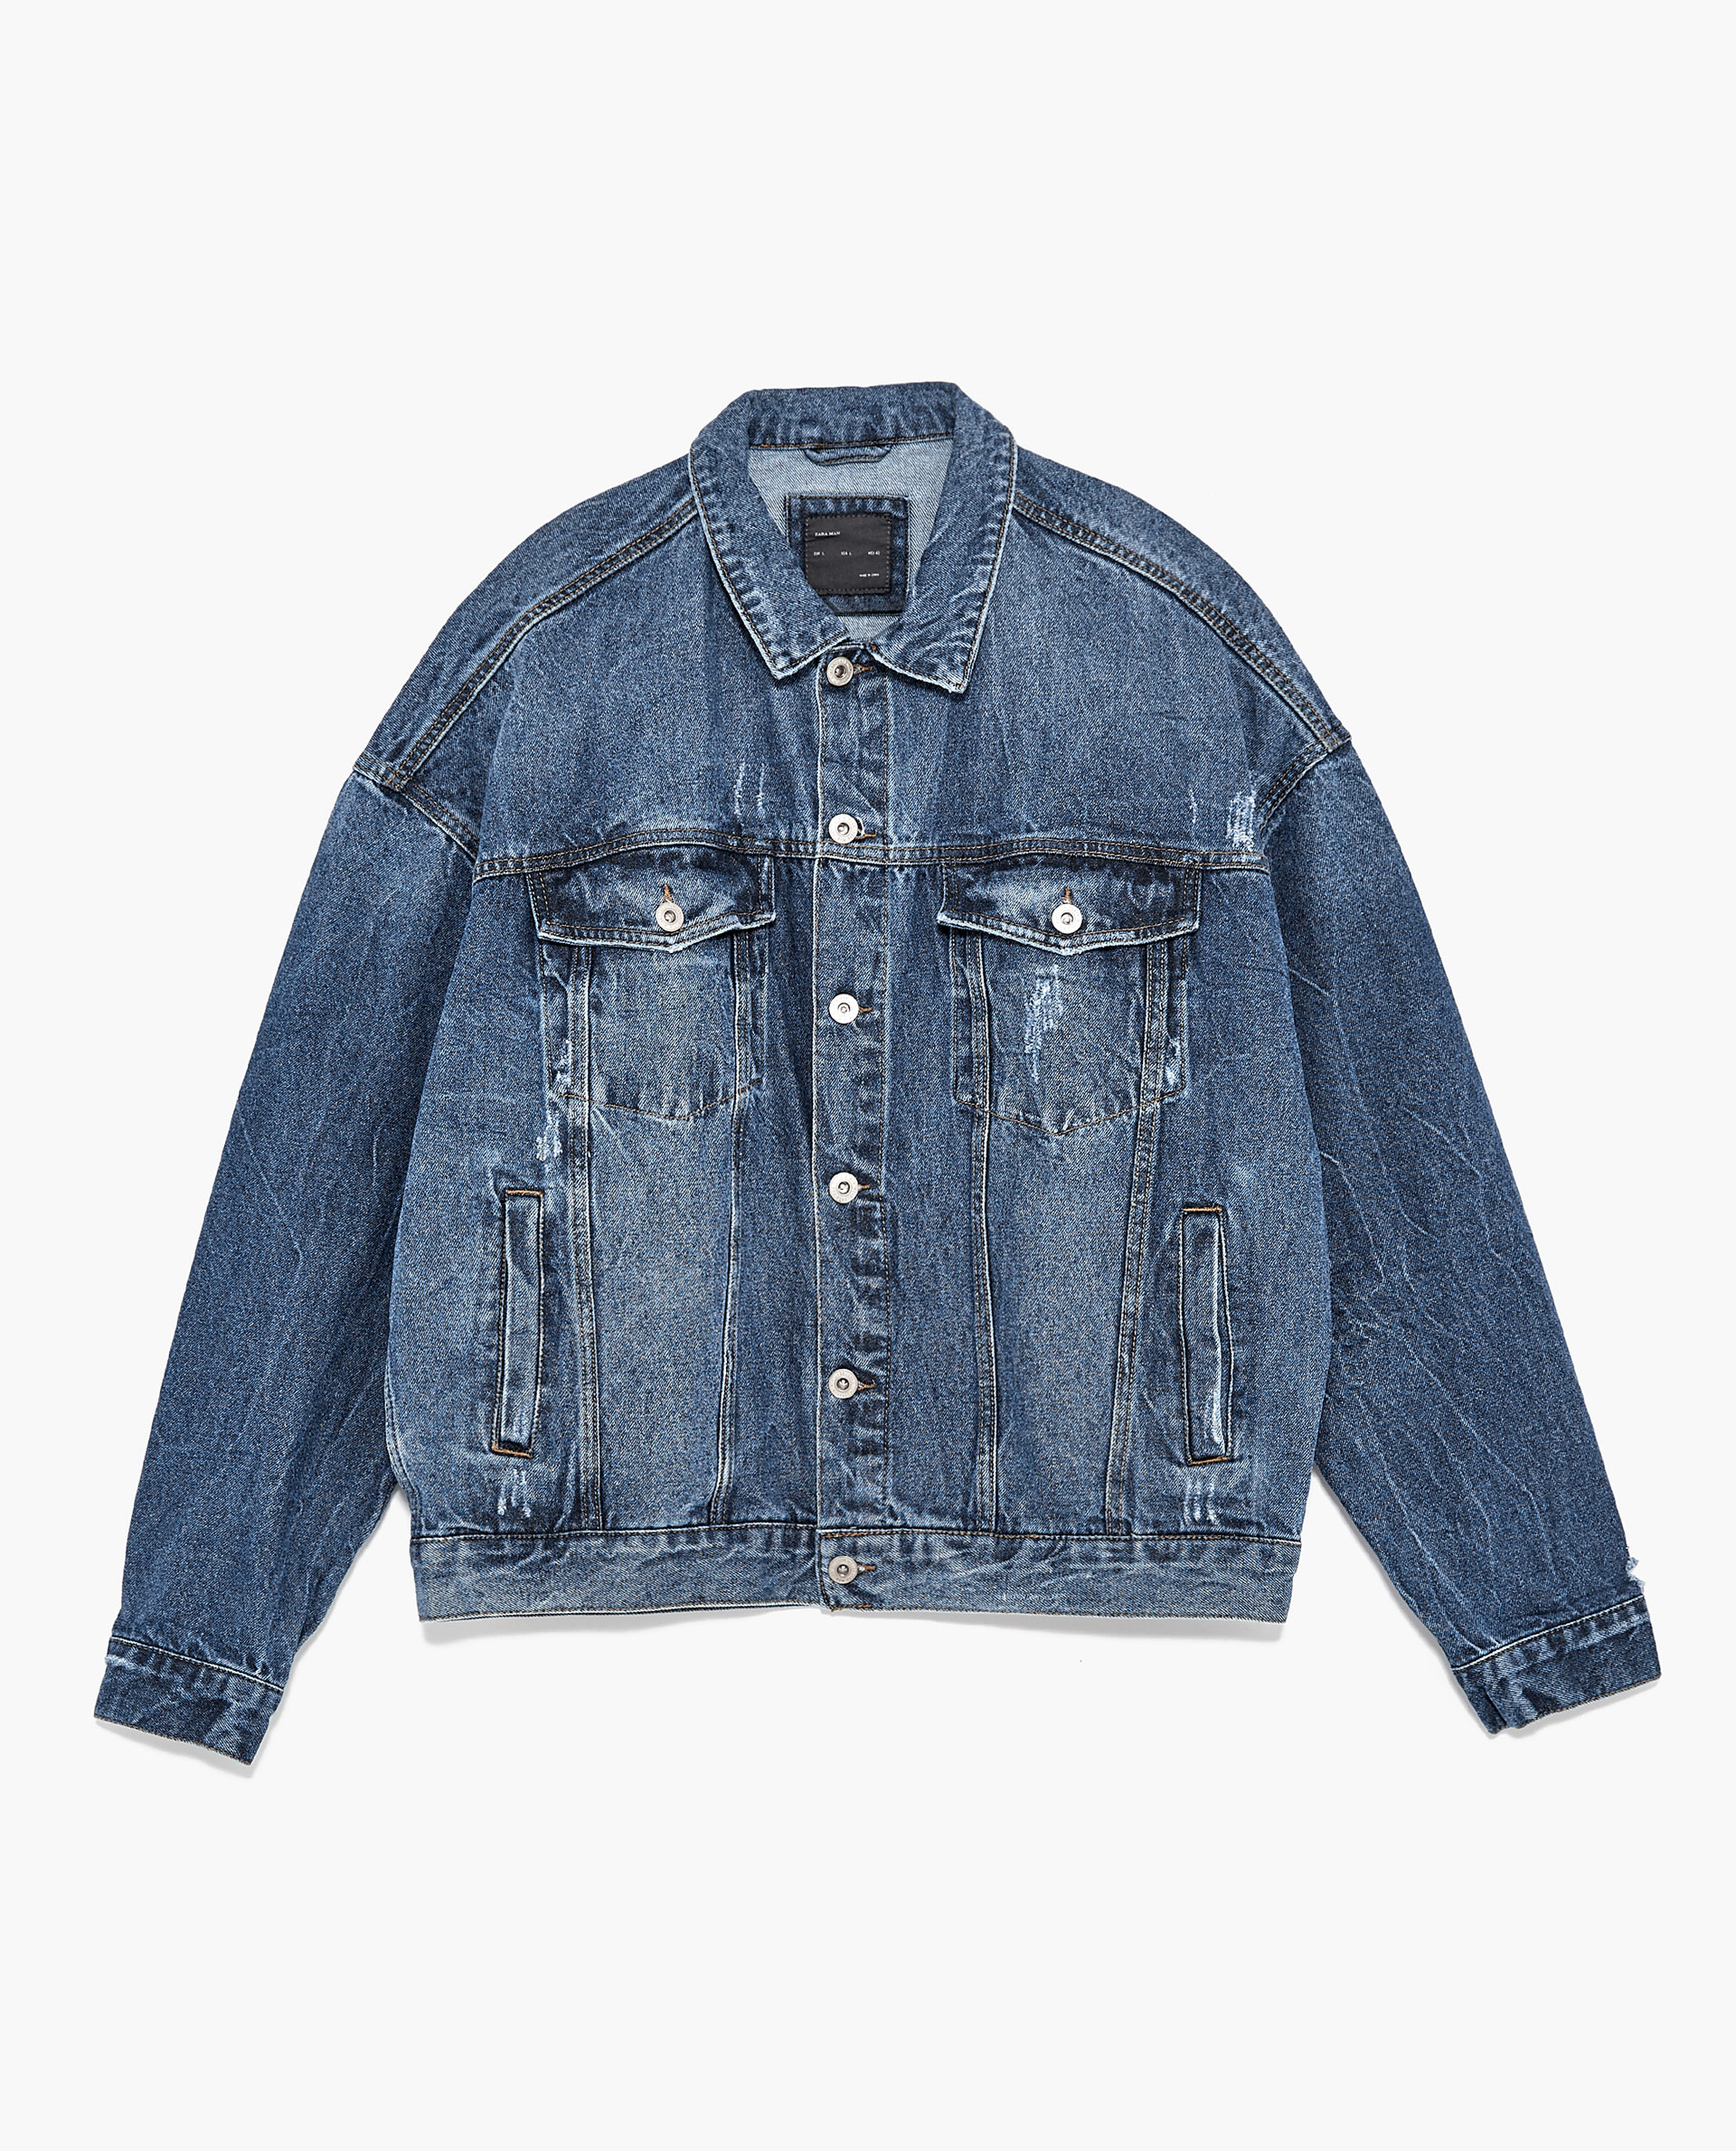 Zara Denim Jacket